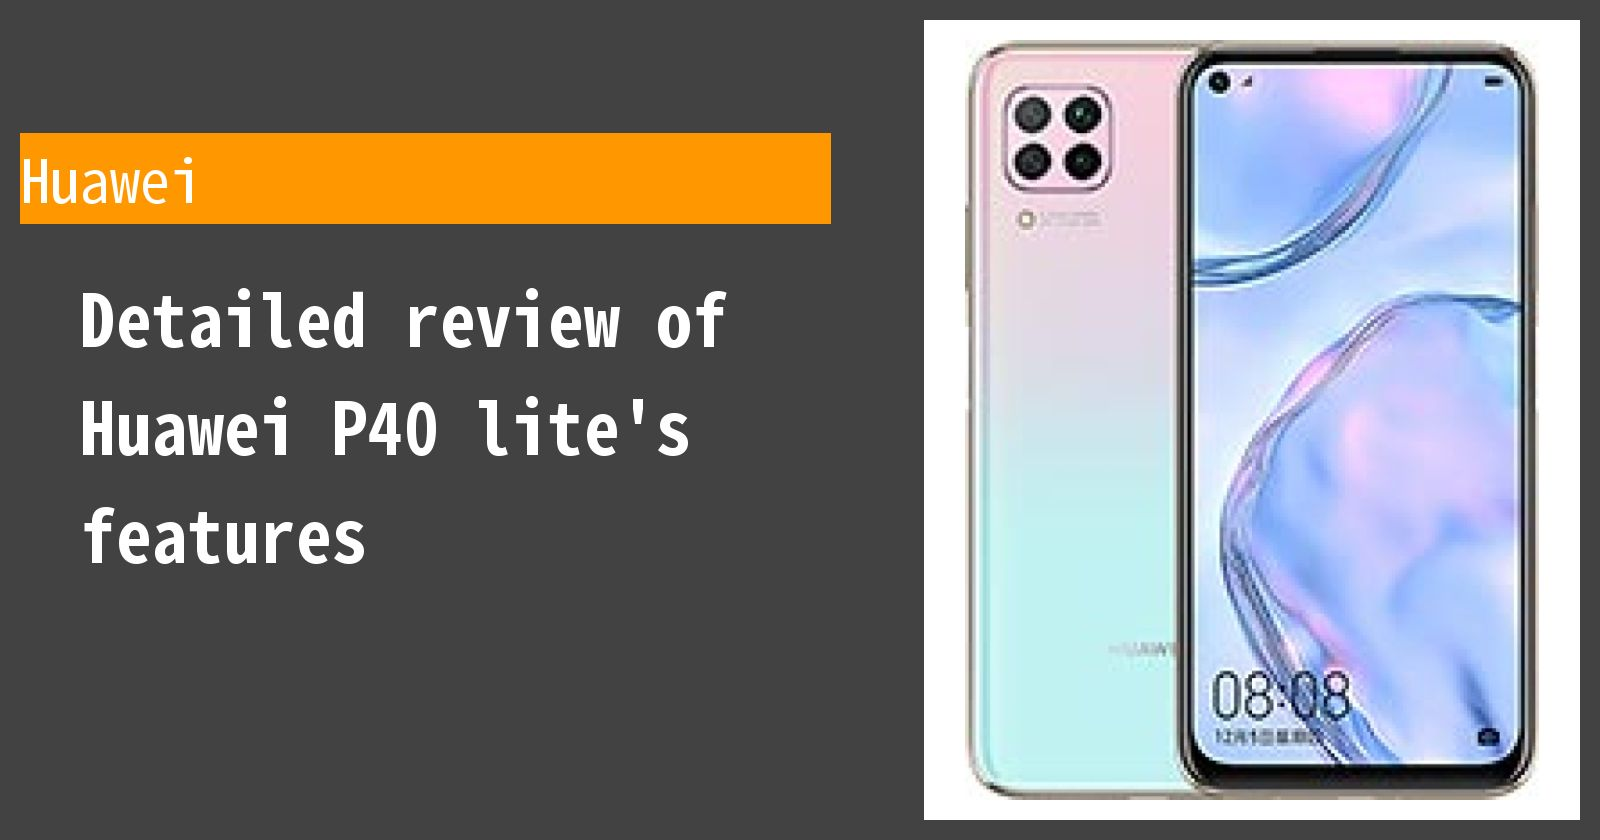 Detailed review of Huawei P40 lite's features